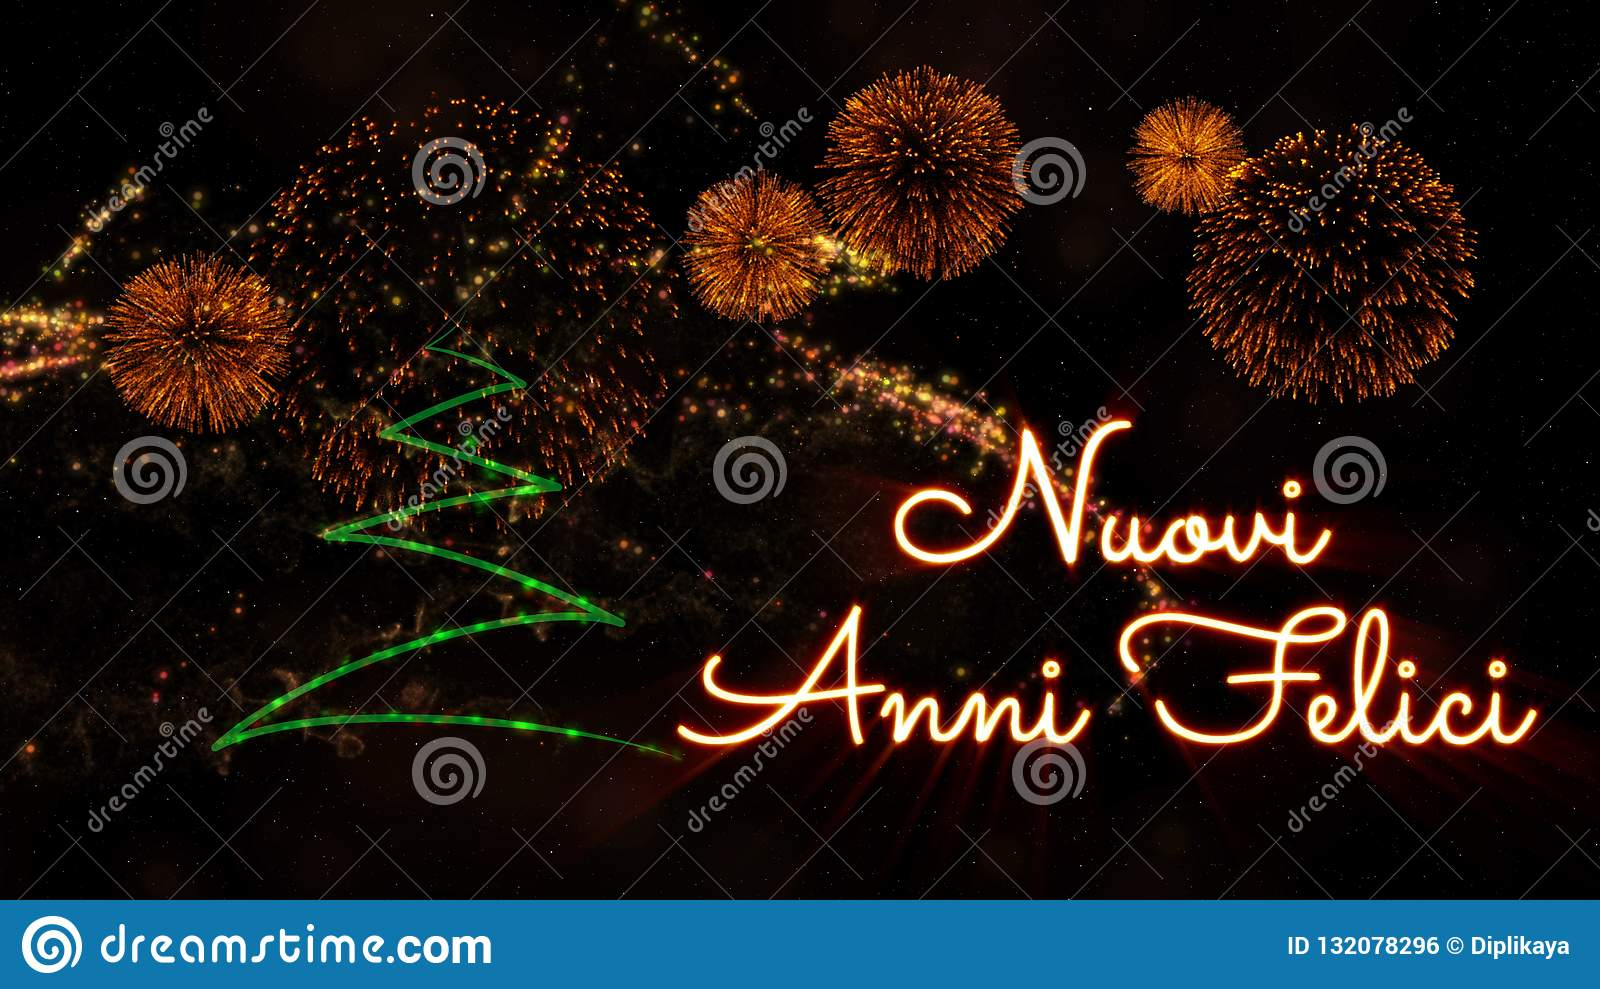 Happy New Year text in Italian  Nuovi Anni Felici  over pine tree and fireworks